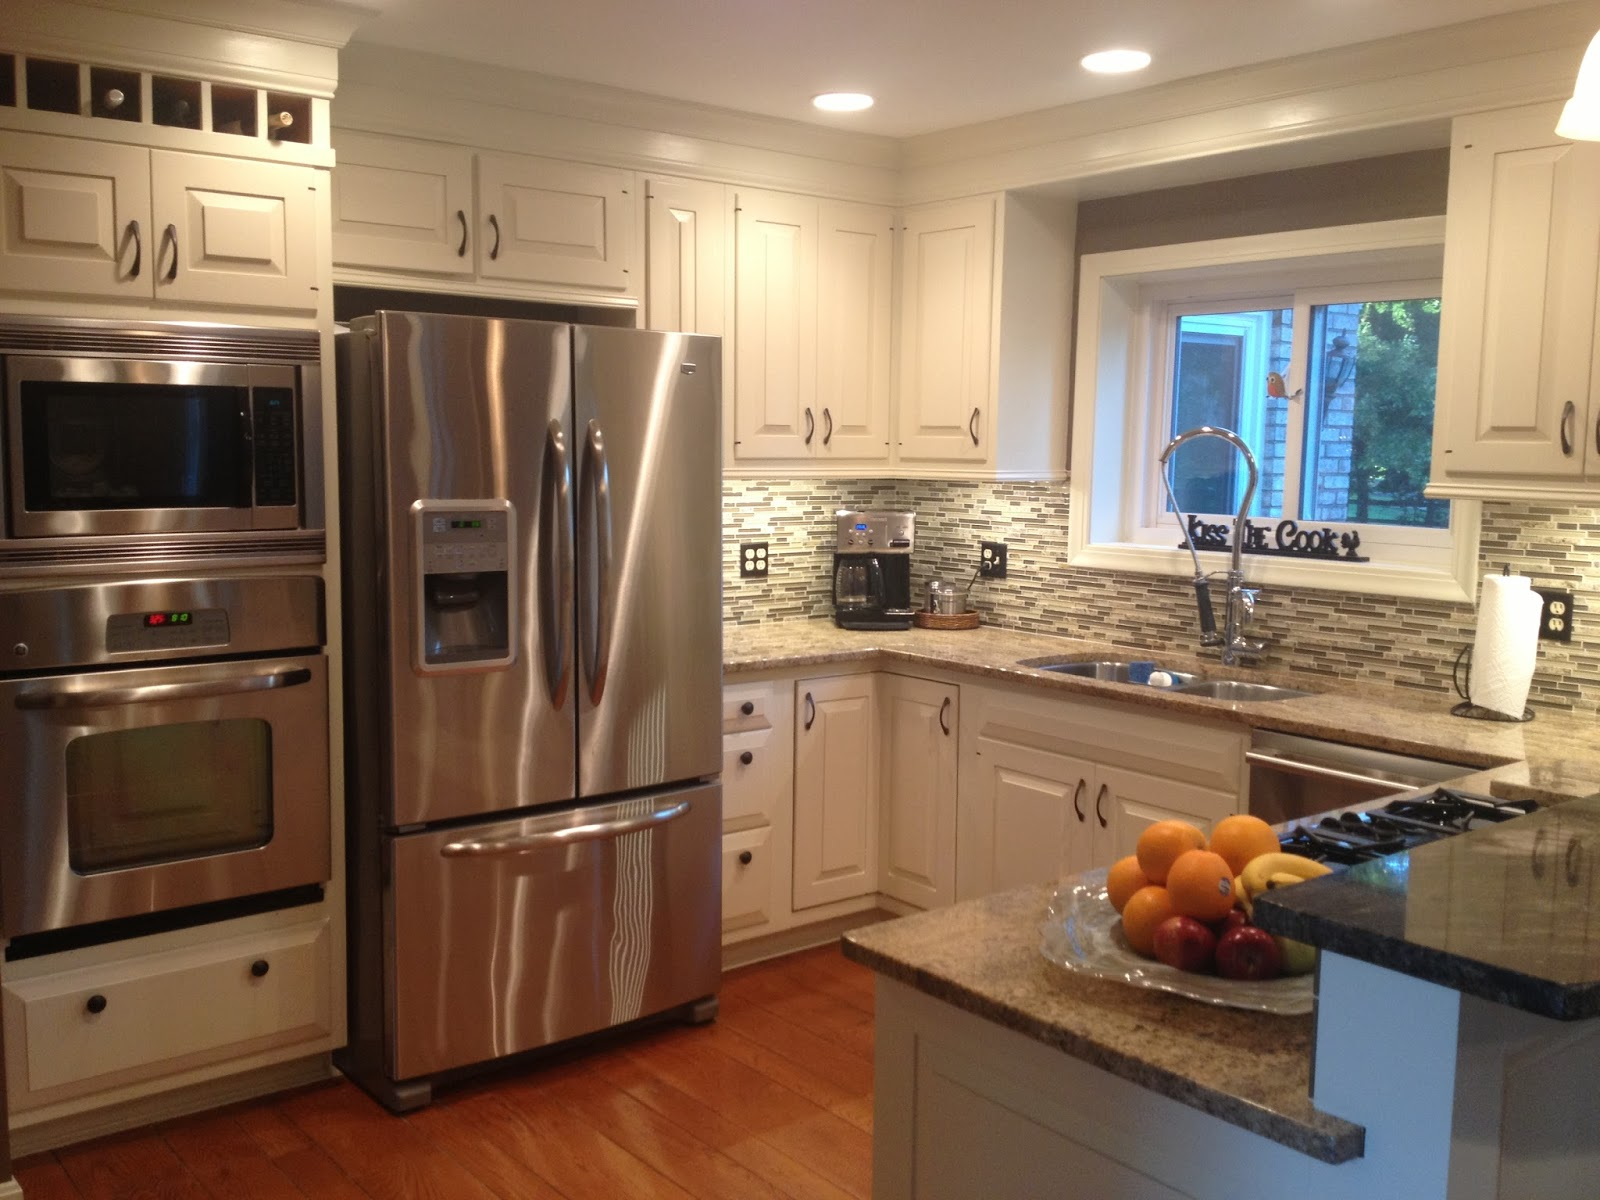 Four seasons style the new kitchen remodel on a budget for Kitchen cabinet remodel